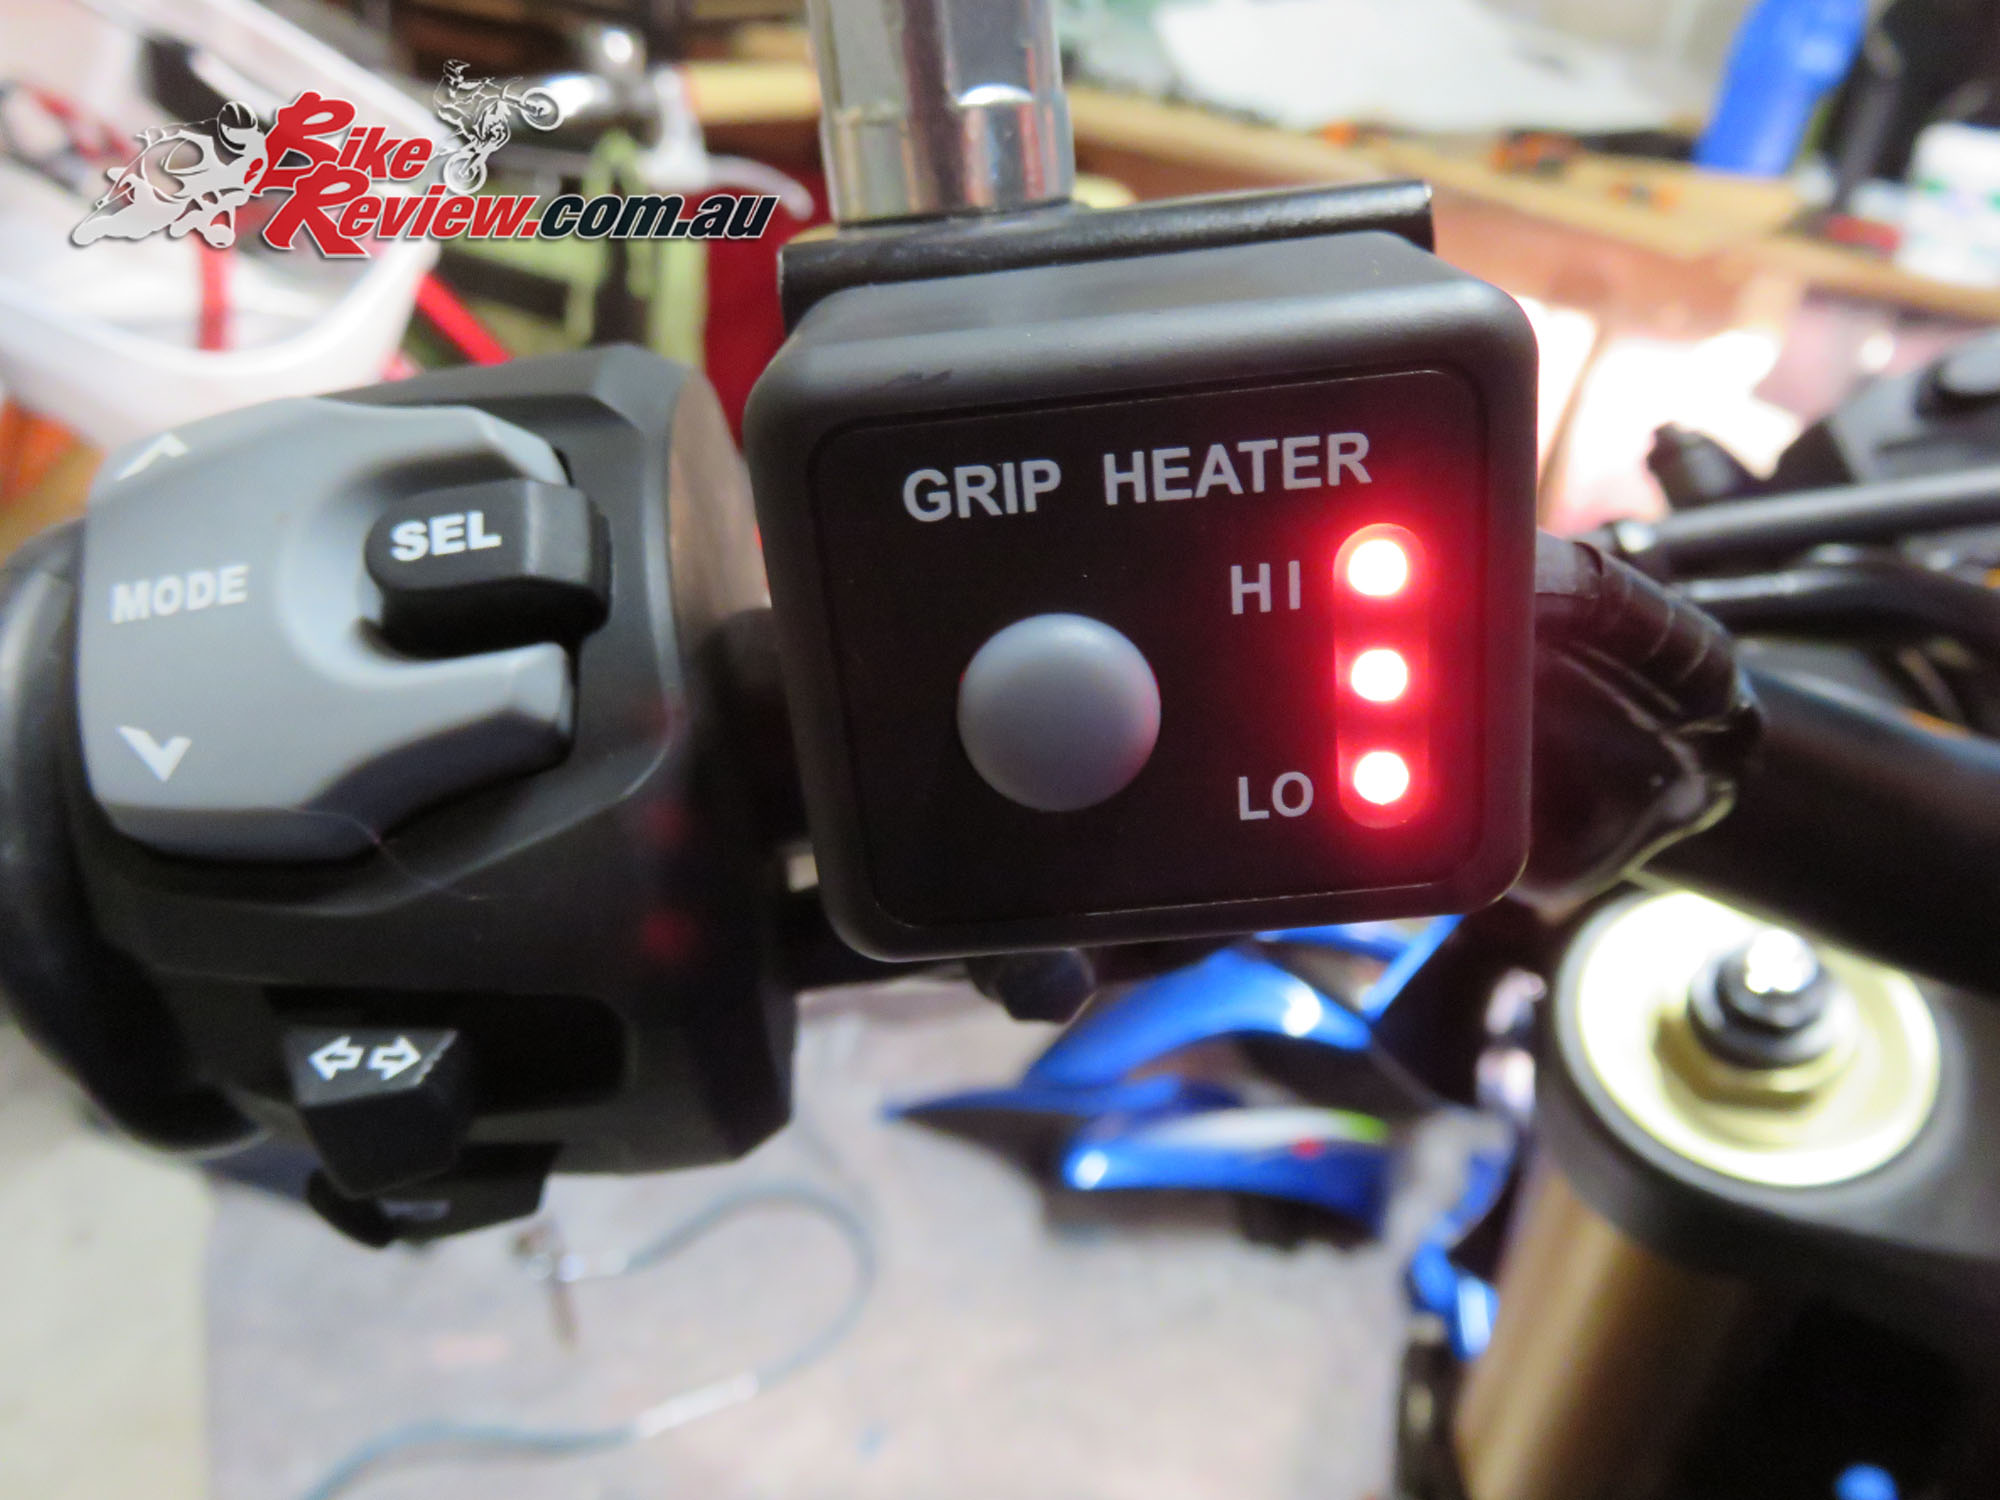 Staff Bike Suzuki Gsx S1000 Update Heated Grips Bike Review